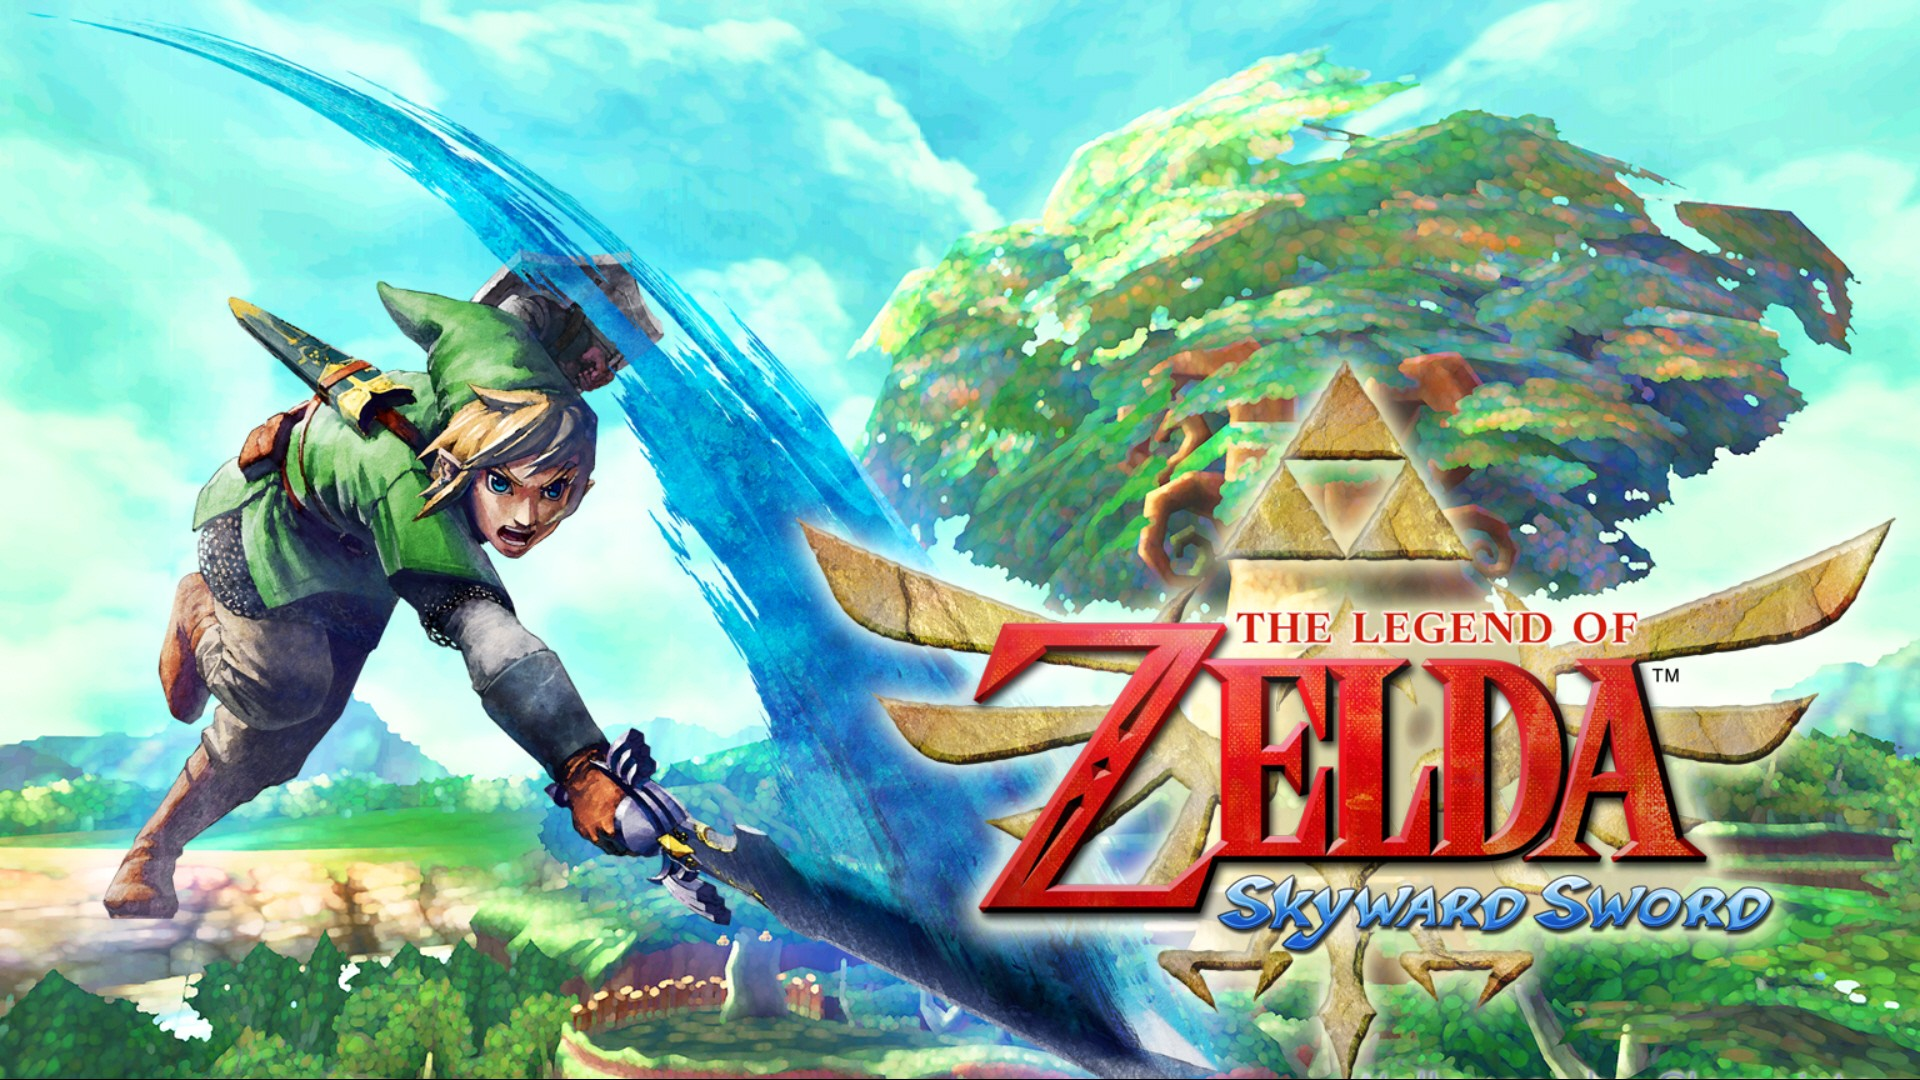 The Legend Of Zelda Skyward Sword Hd Wallpaper Background Image